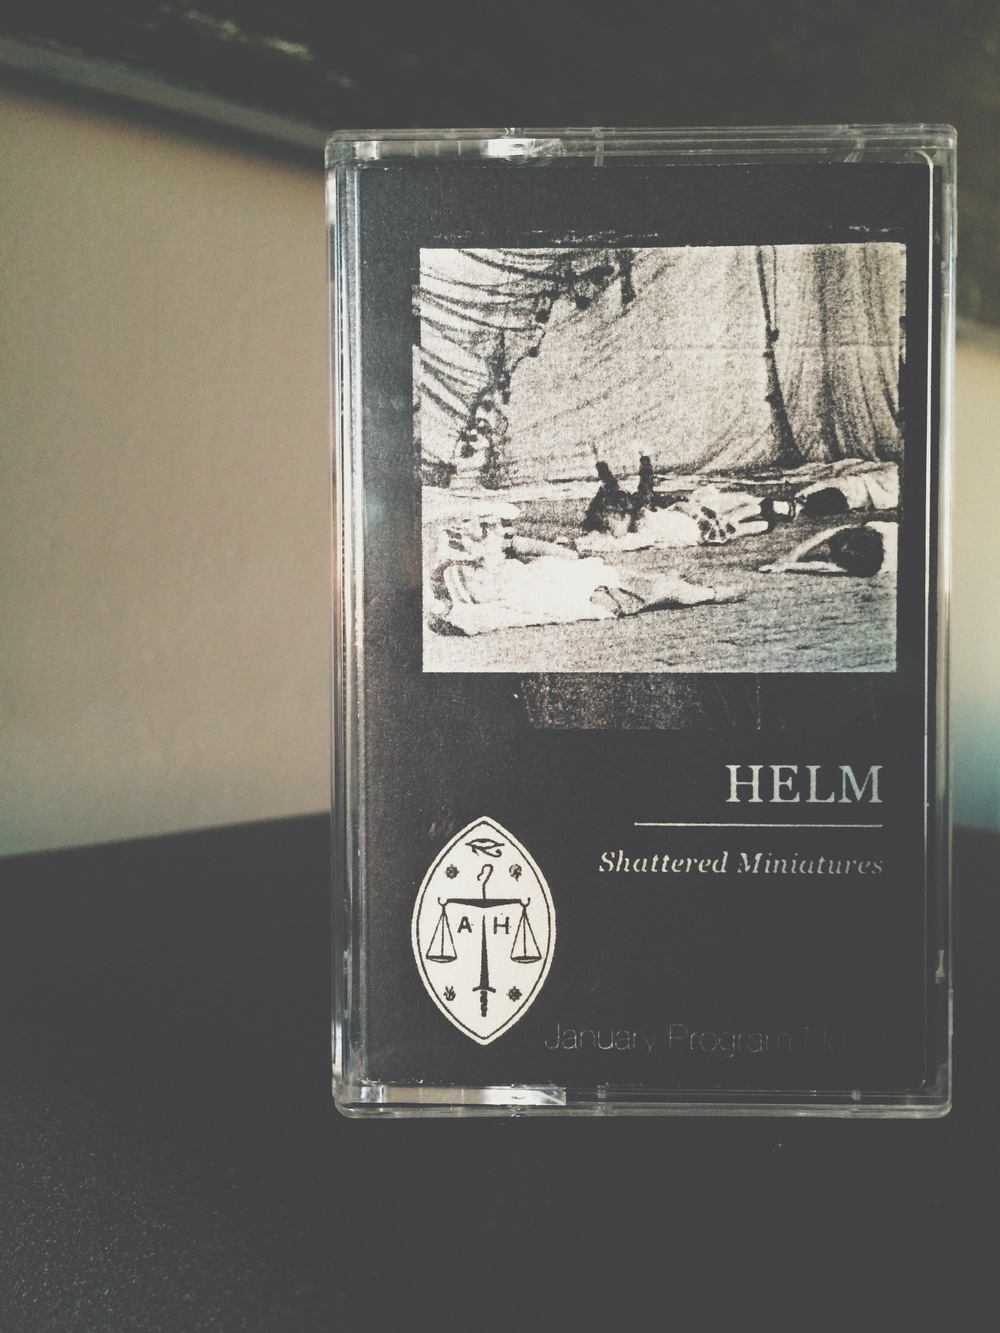 05. Helm - Shattered Miniatures.jpg